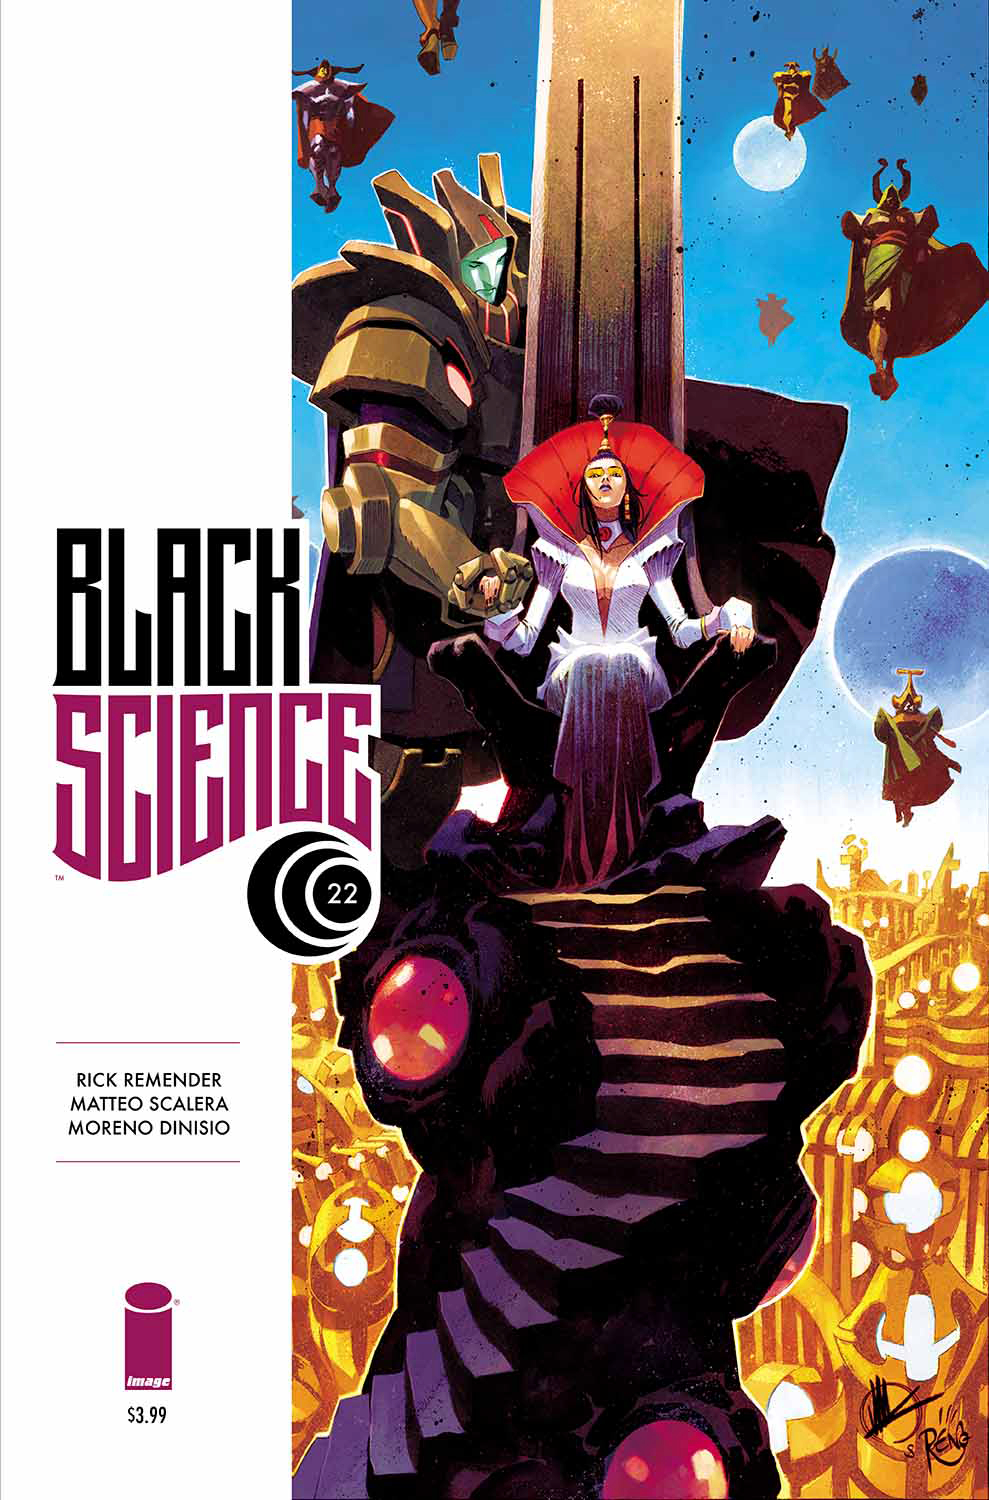 BLACK SCIENCE #22 (MR)